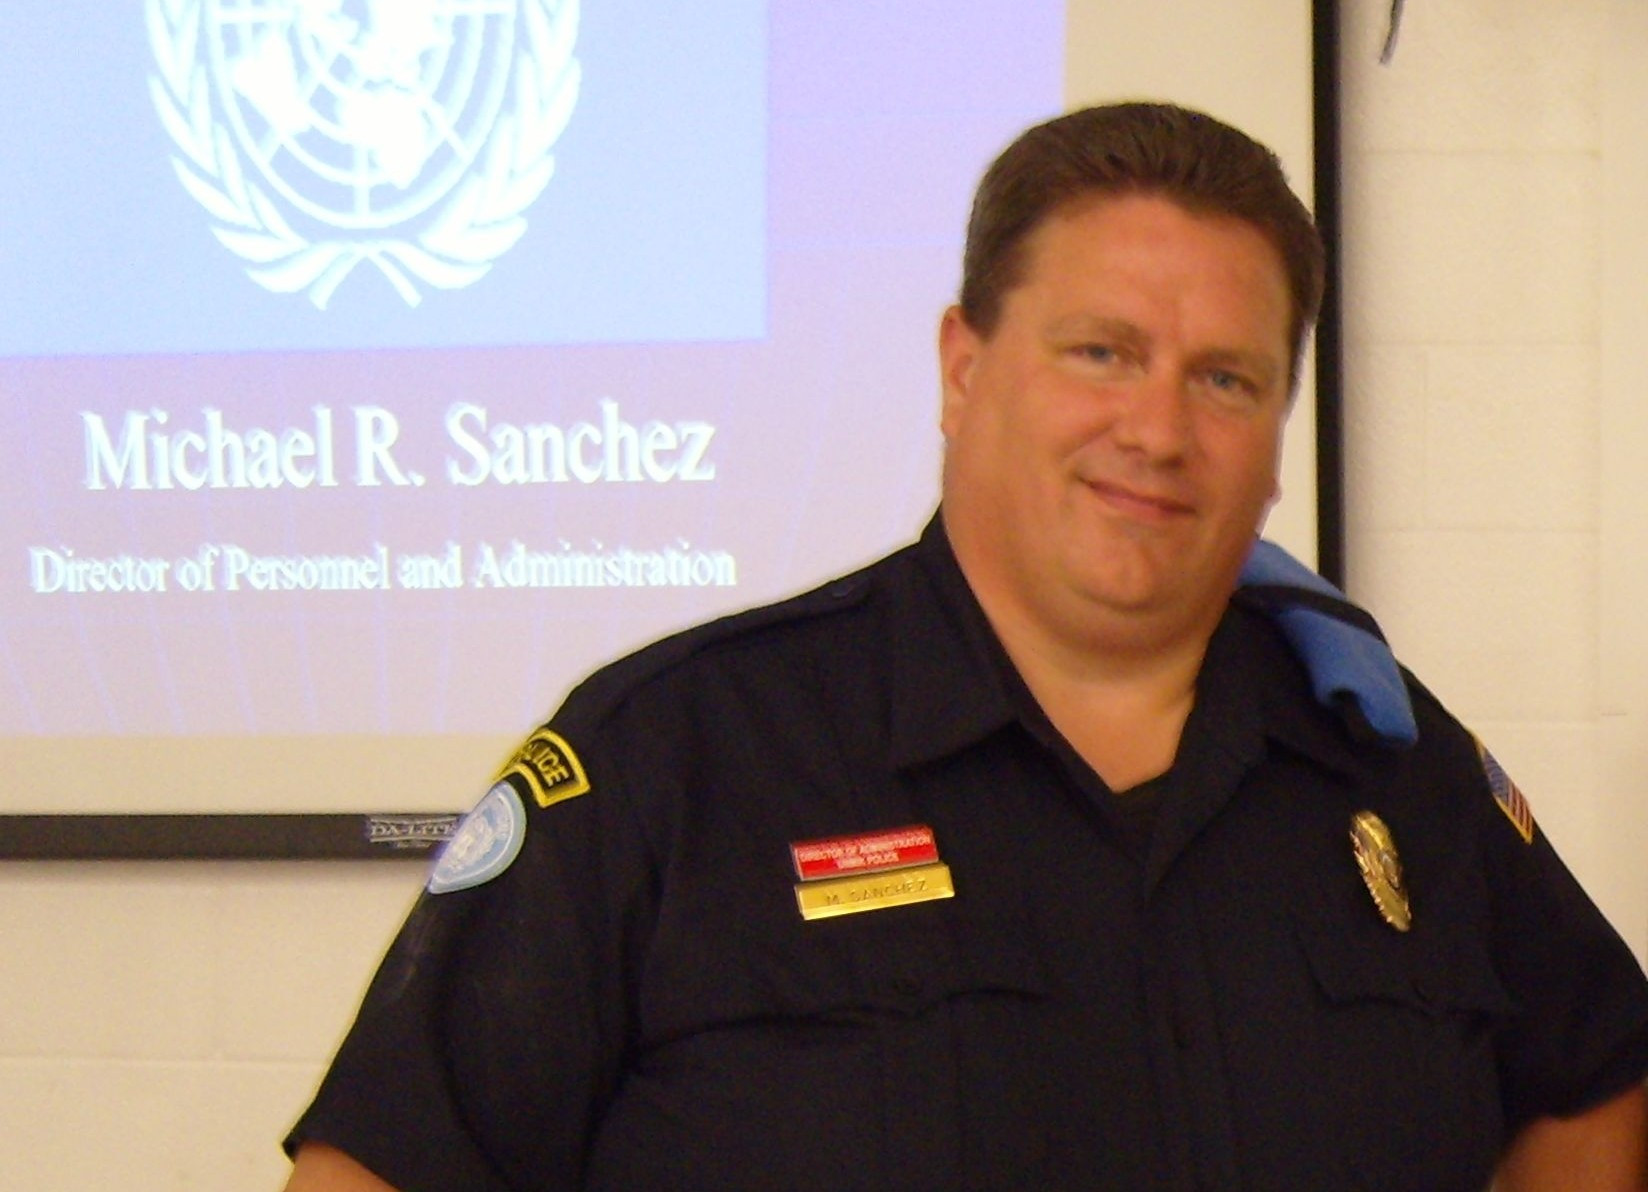 Author - Michael R. Sanchez